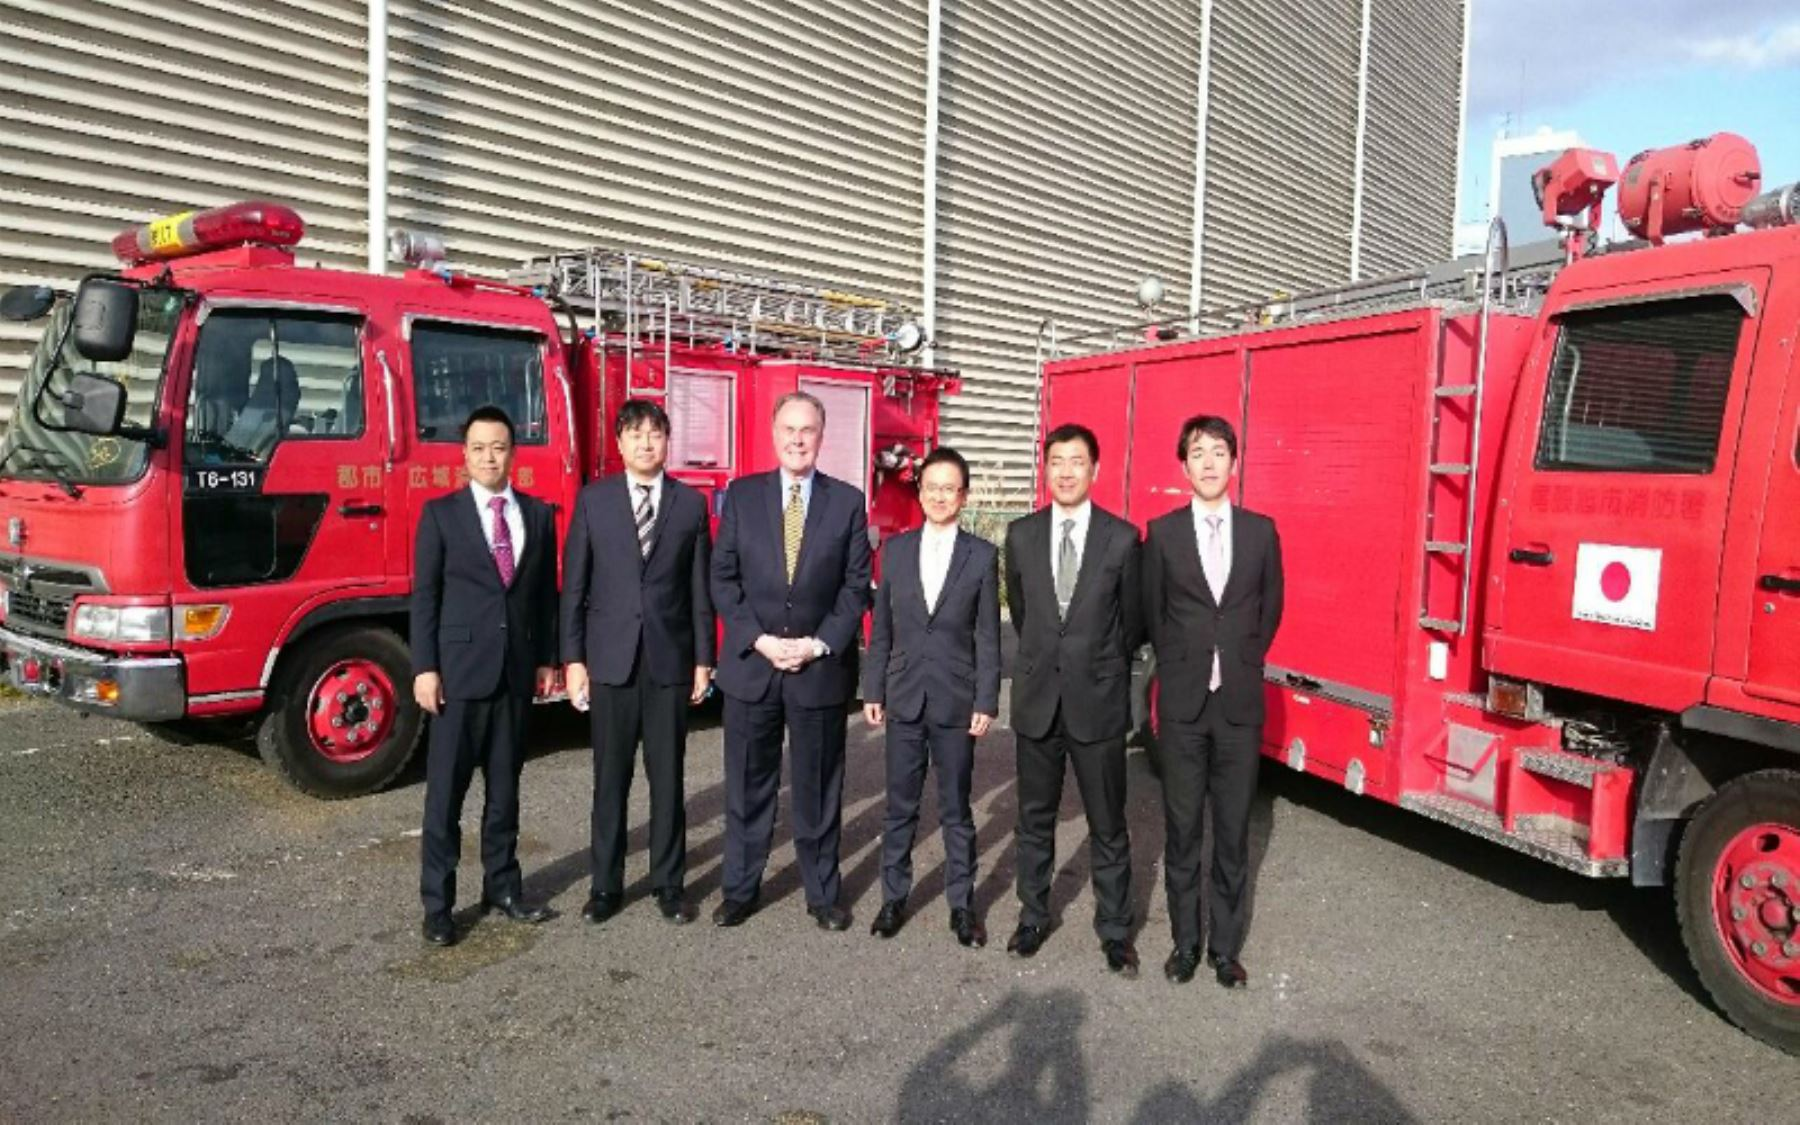 Japan donates mobile units to Peruvian firefighters